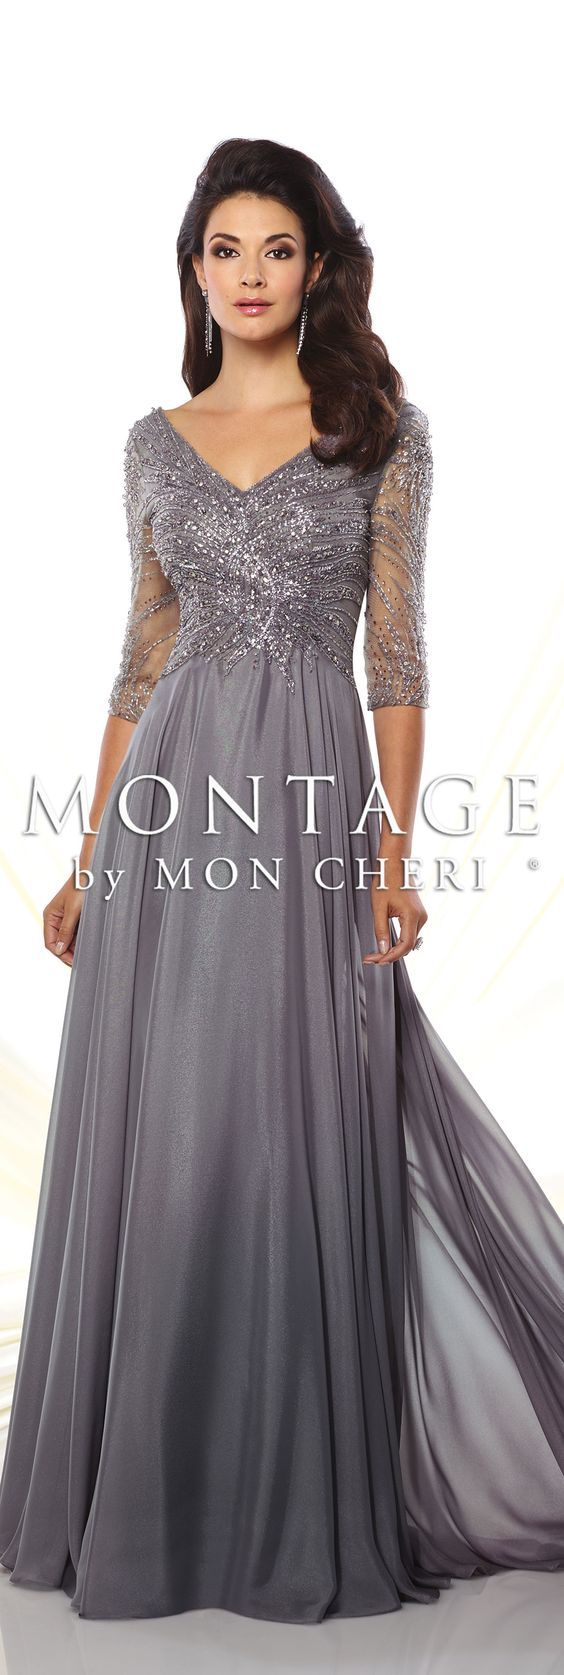 Montage by Mon Cheri Spring 2016 - Style No. 116950 #eveninggowns: